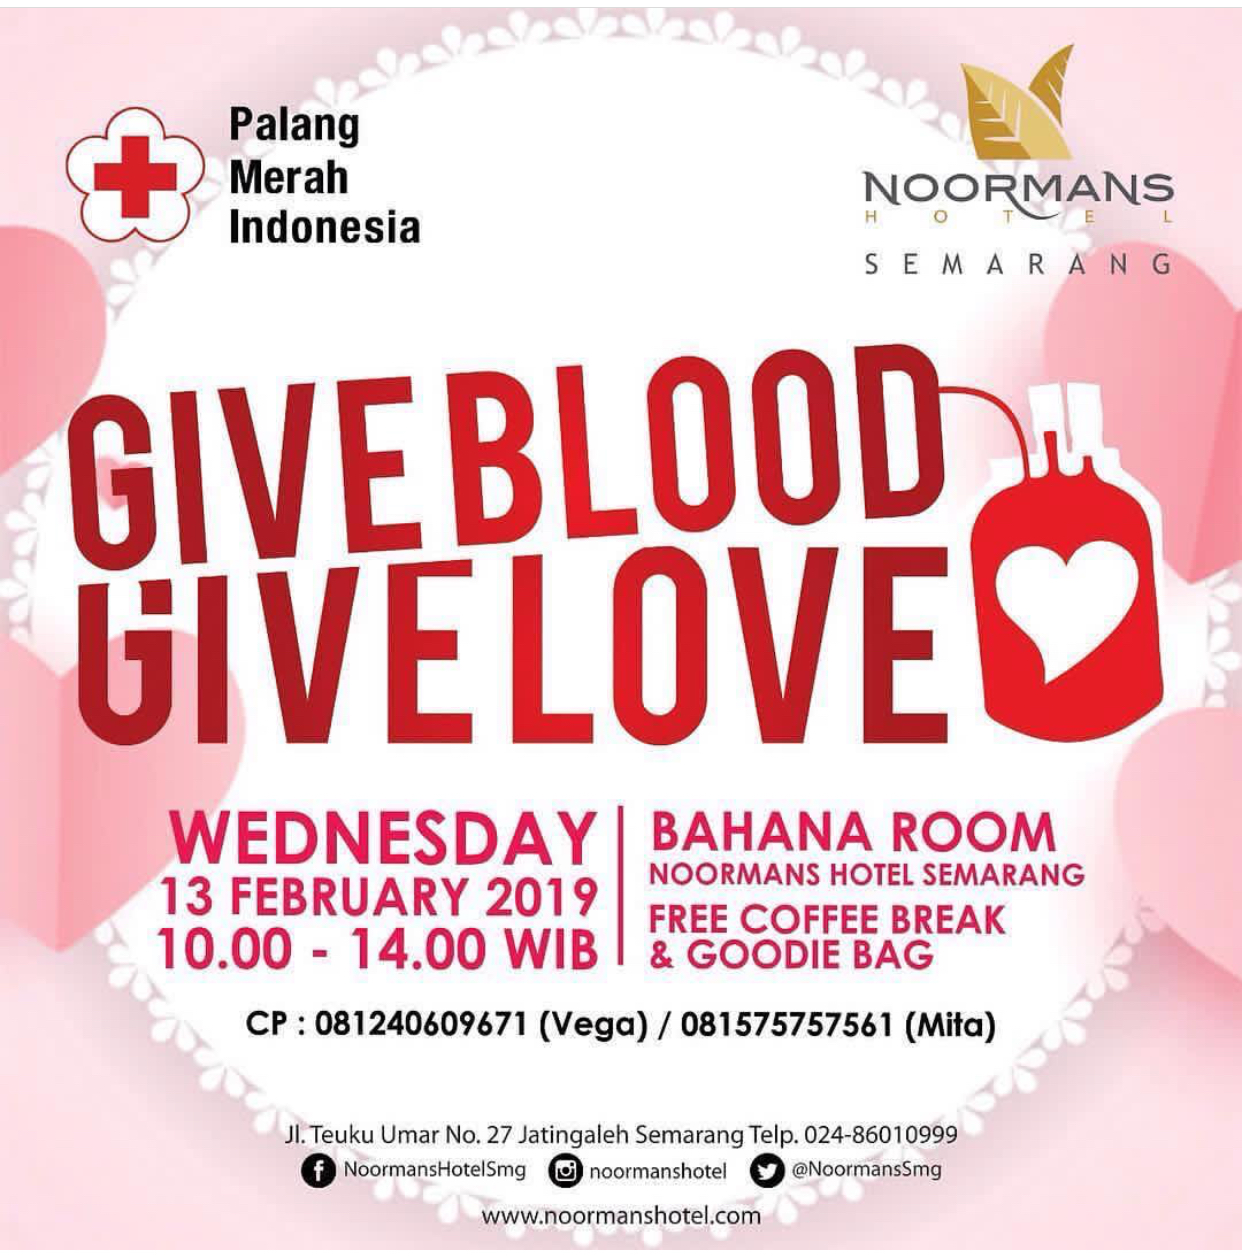 EVENT SEMARANG - GIVE BLOOD, GIVE LOVE